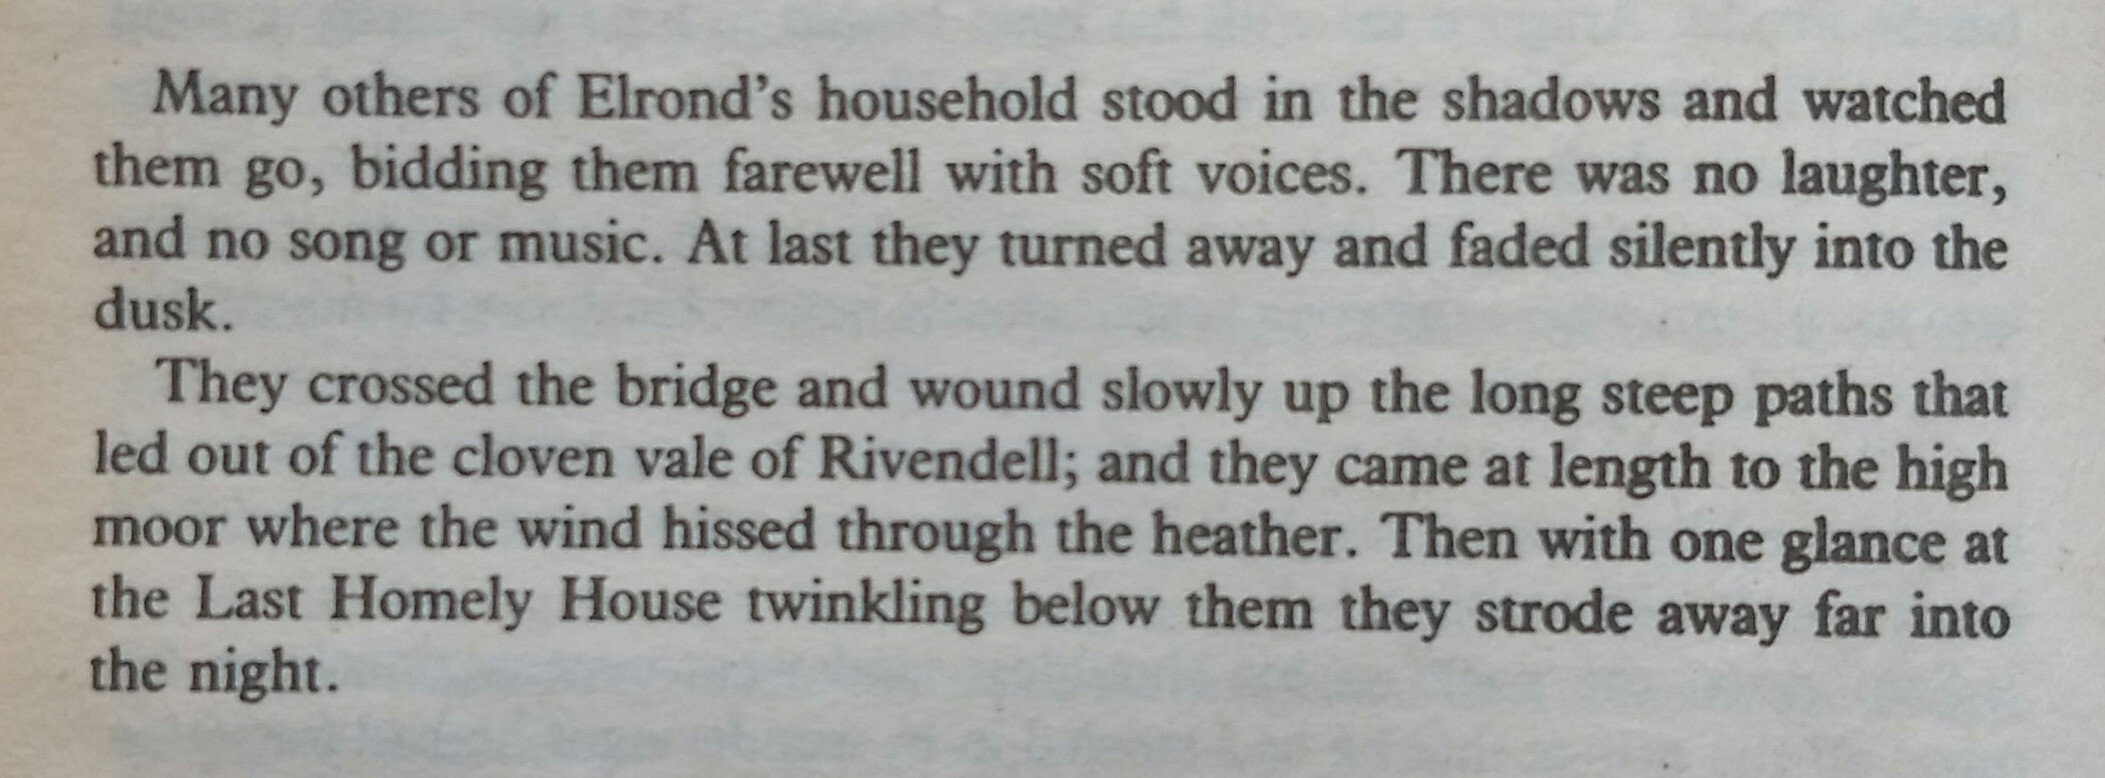 Many others of Elrond's household stood in the shadows and watched them go, bidding them farewell with soft voices. There was no laughter, and no song or music. At last they turned away and faded silently into the dusk.<br><br>They crossed the bridge and wound slowly up the long steep paths that led out of the cloven vale of Rivendell; and they came at length to the high moor where the wind hissed through the heather. Then with one glance at the Last Homely House twinkling below them they strode away far into the night.